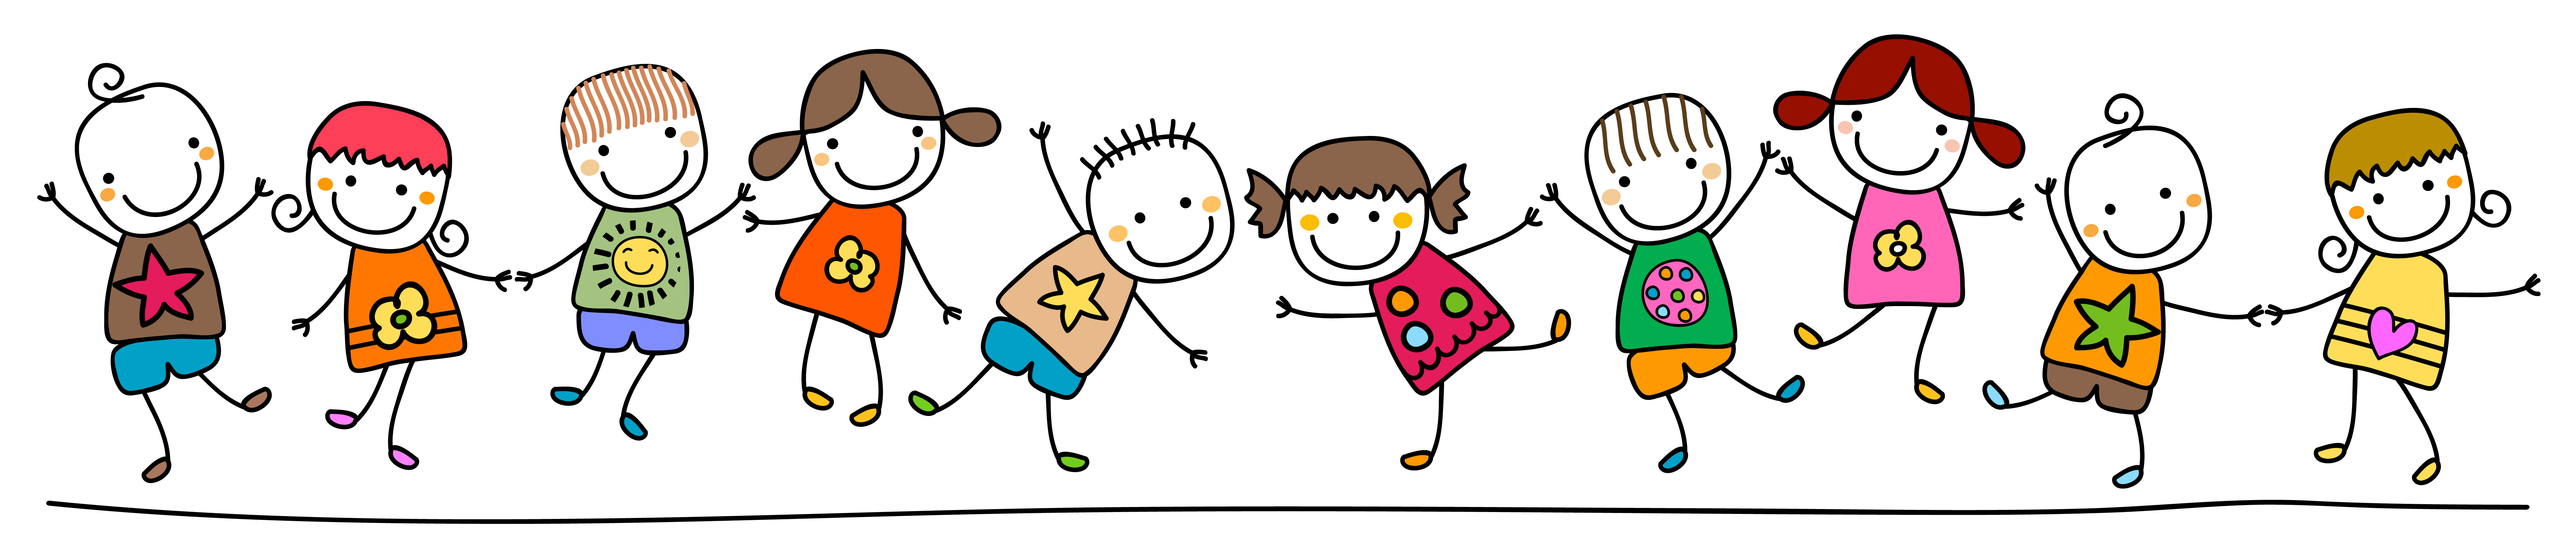 Kids playing at getdrawings. Drawing clipart healthy child svg free stock